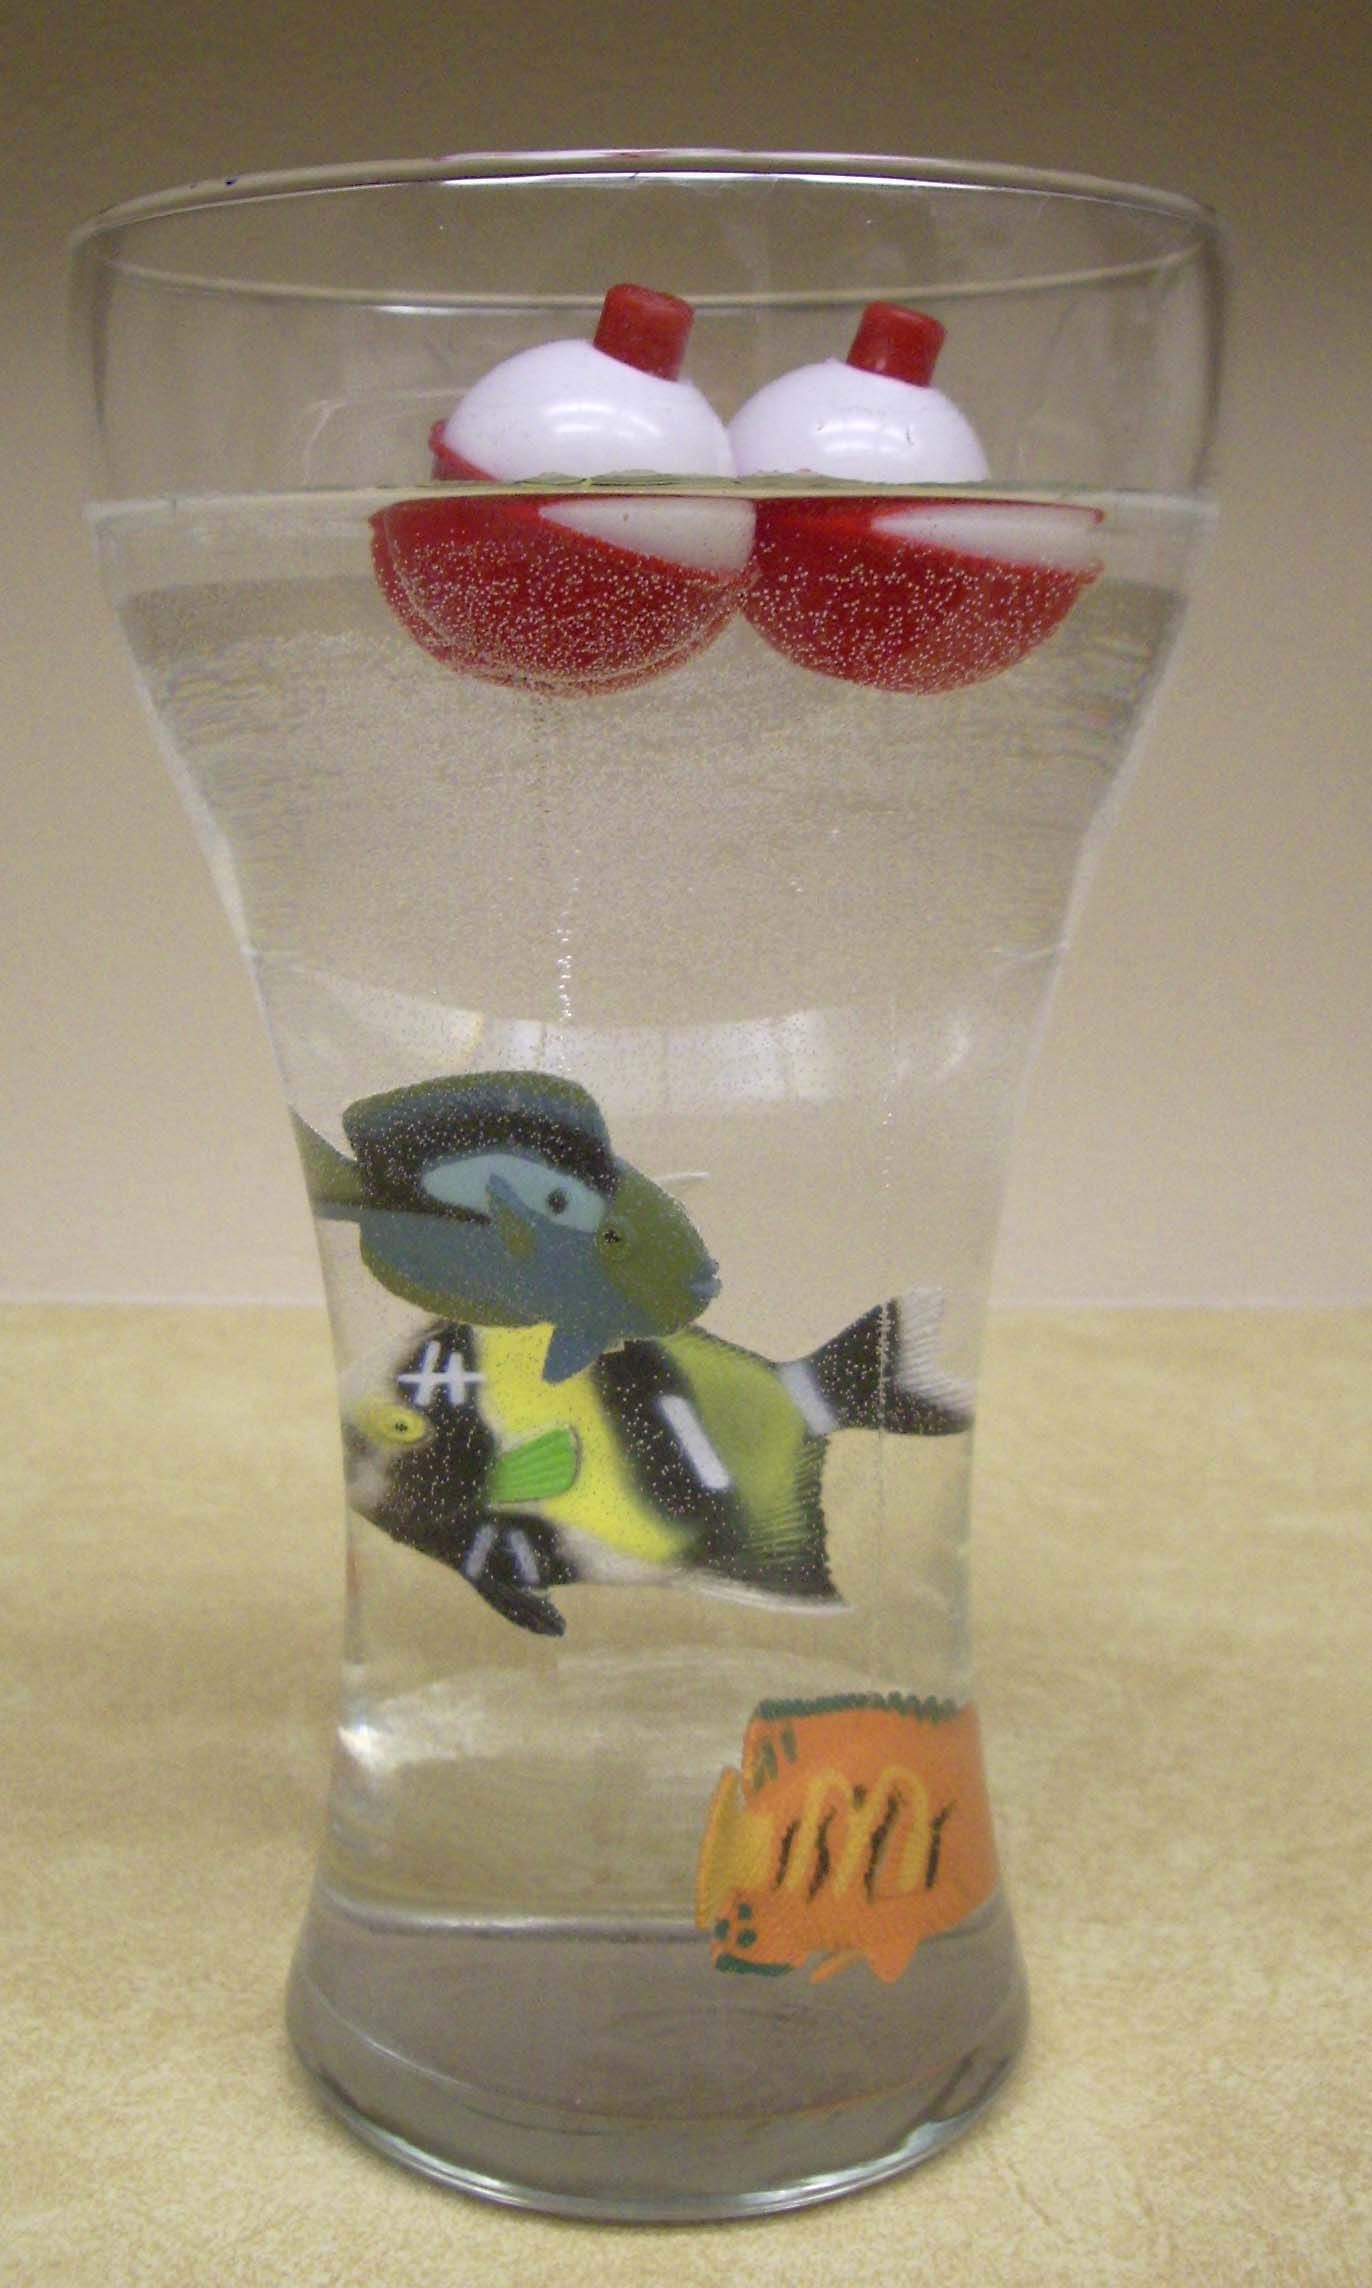 Fish Bobber Centerpiece  Add A Fishing Pole (Stick Or